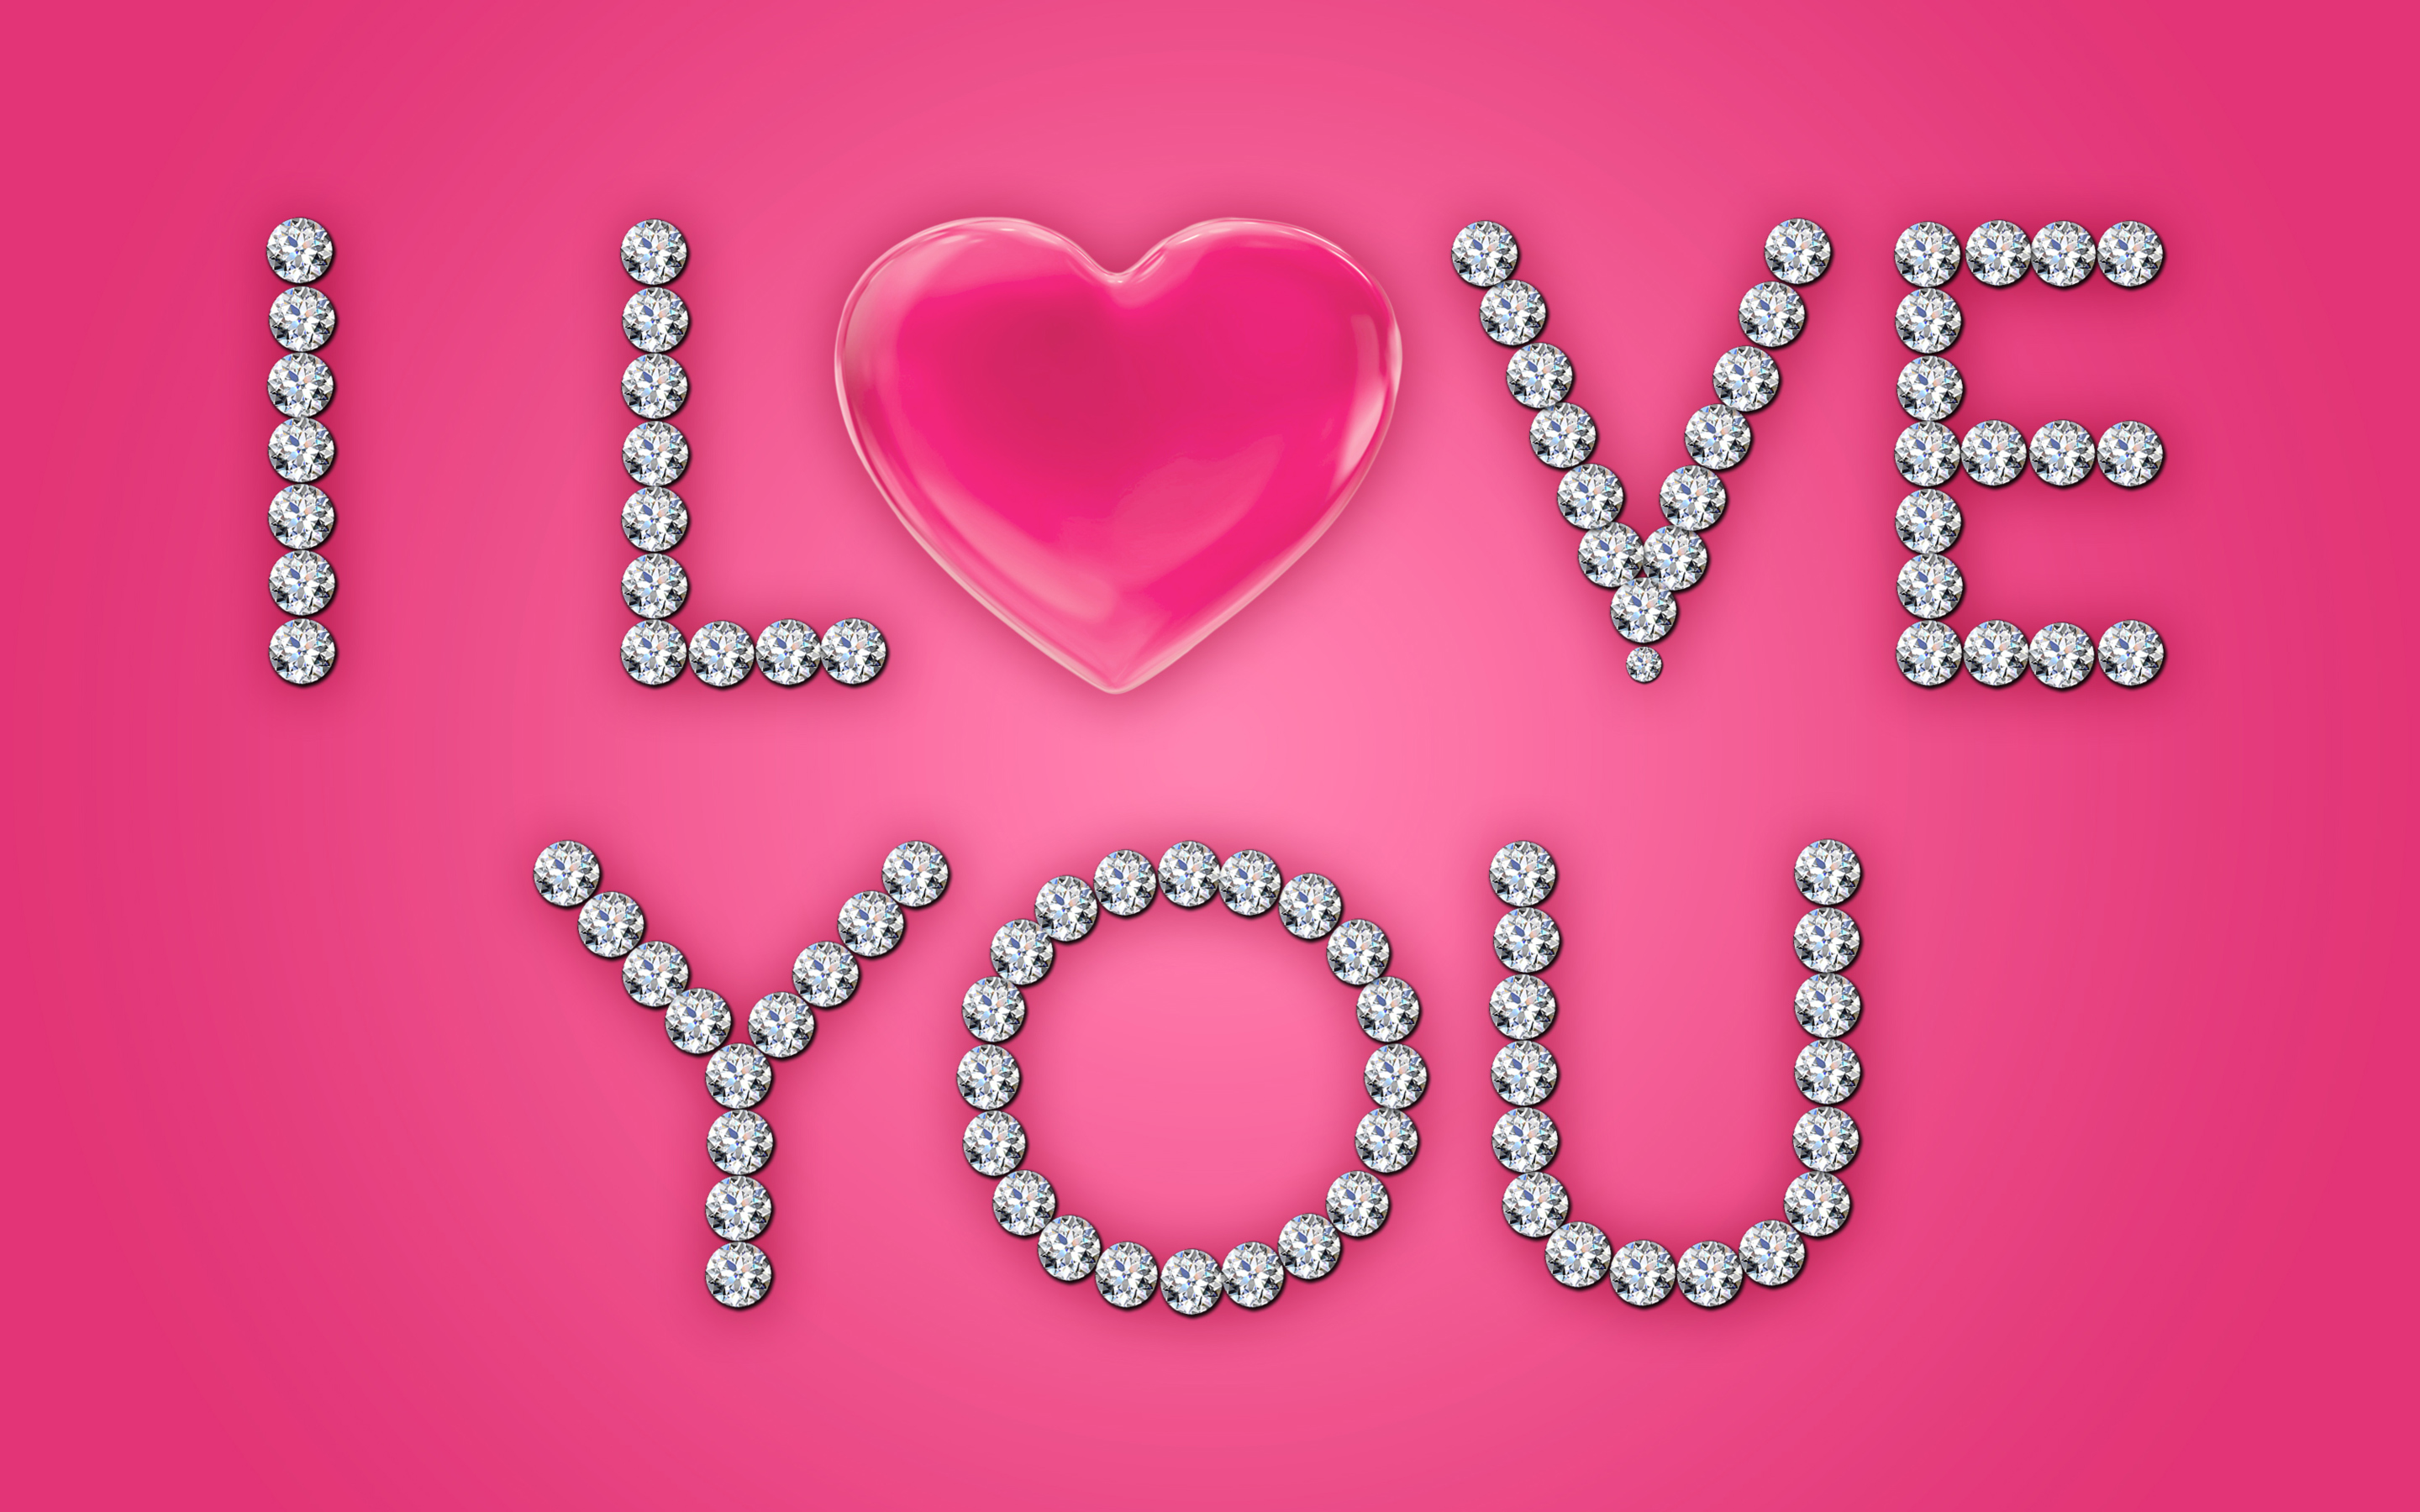 I Love You Heart Wallpaper 2880x1800